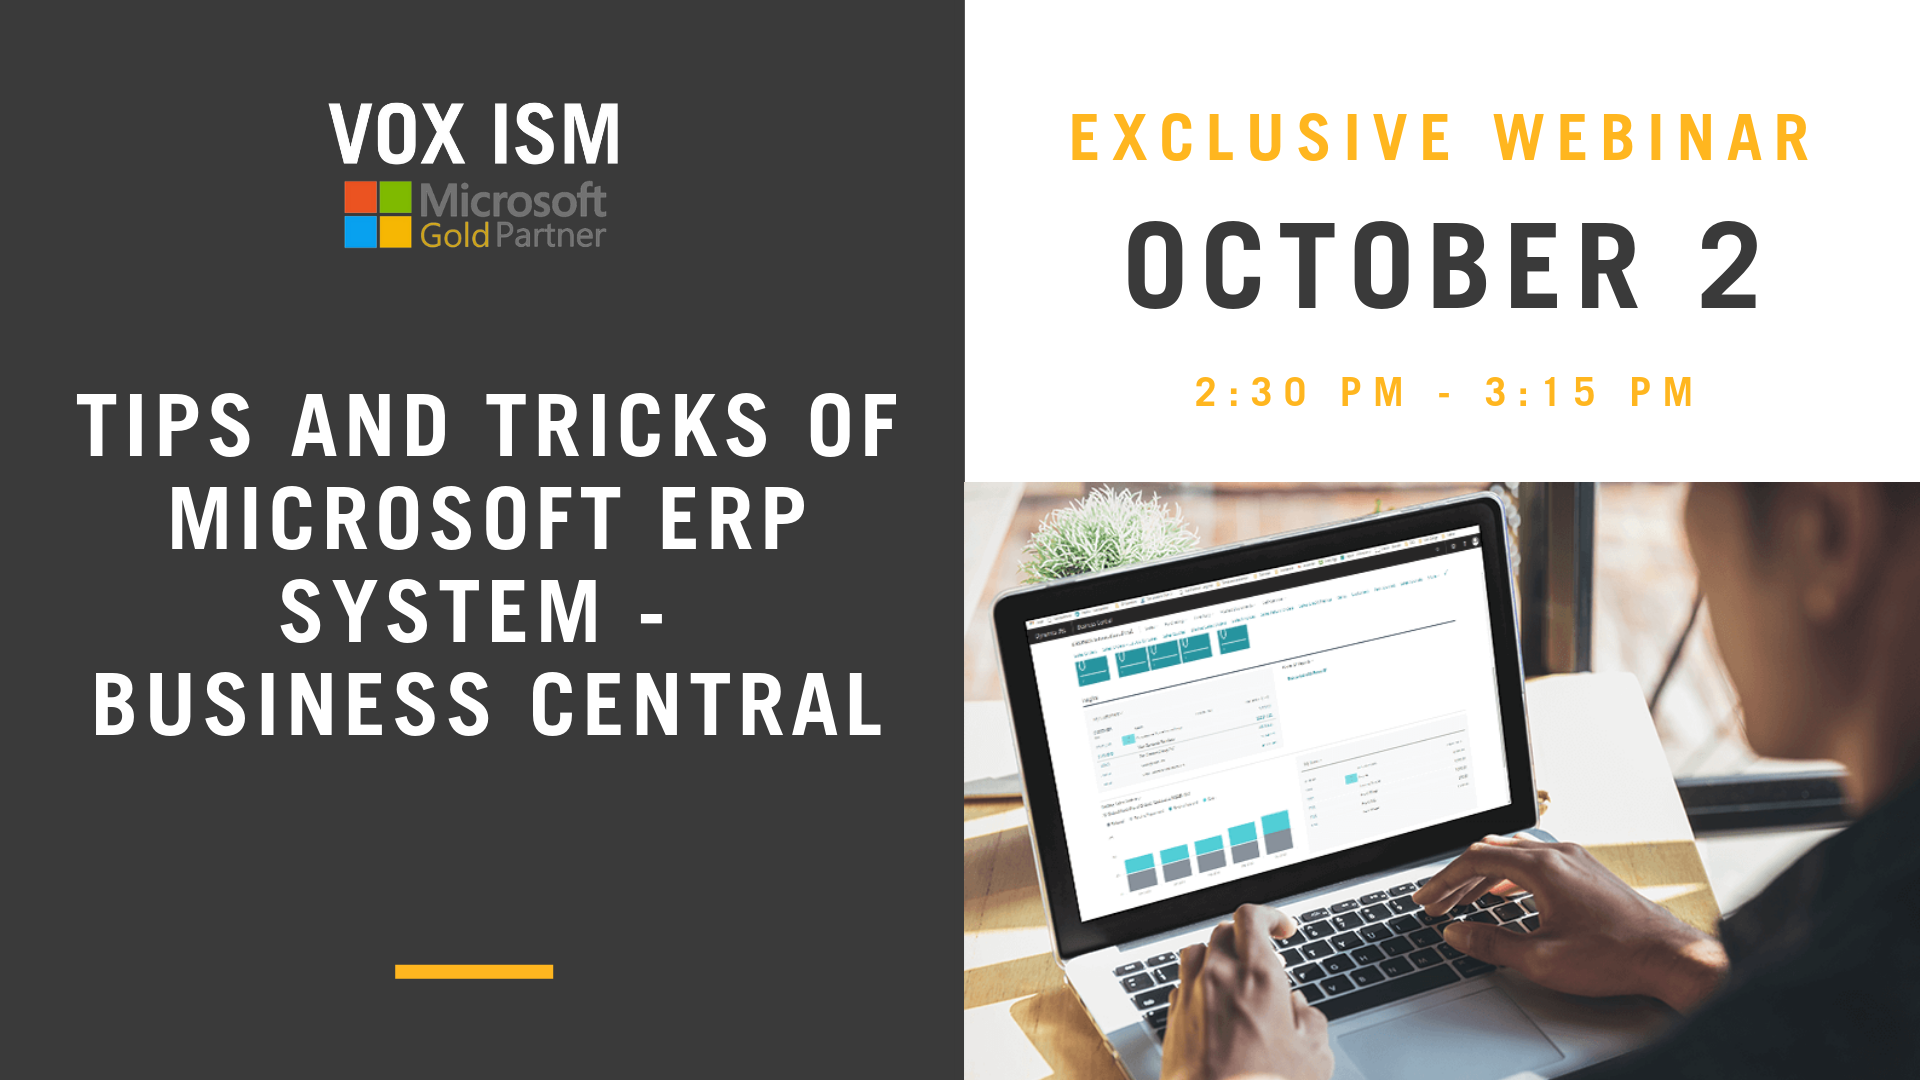 Tips and tricks of Microsoft ERP System - Business Central - VOX ISM